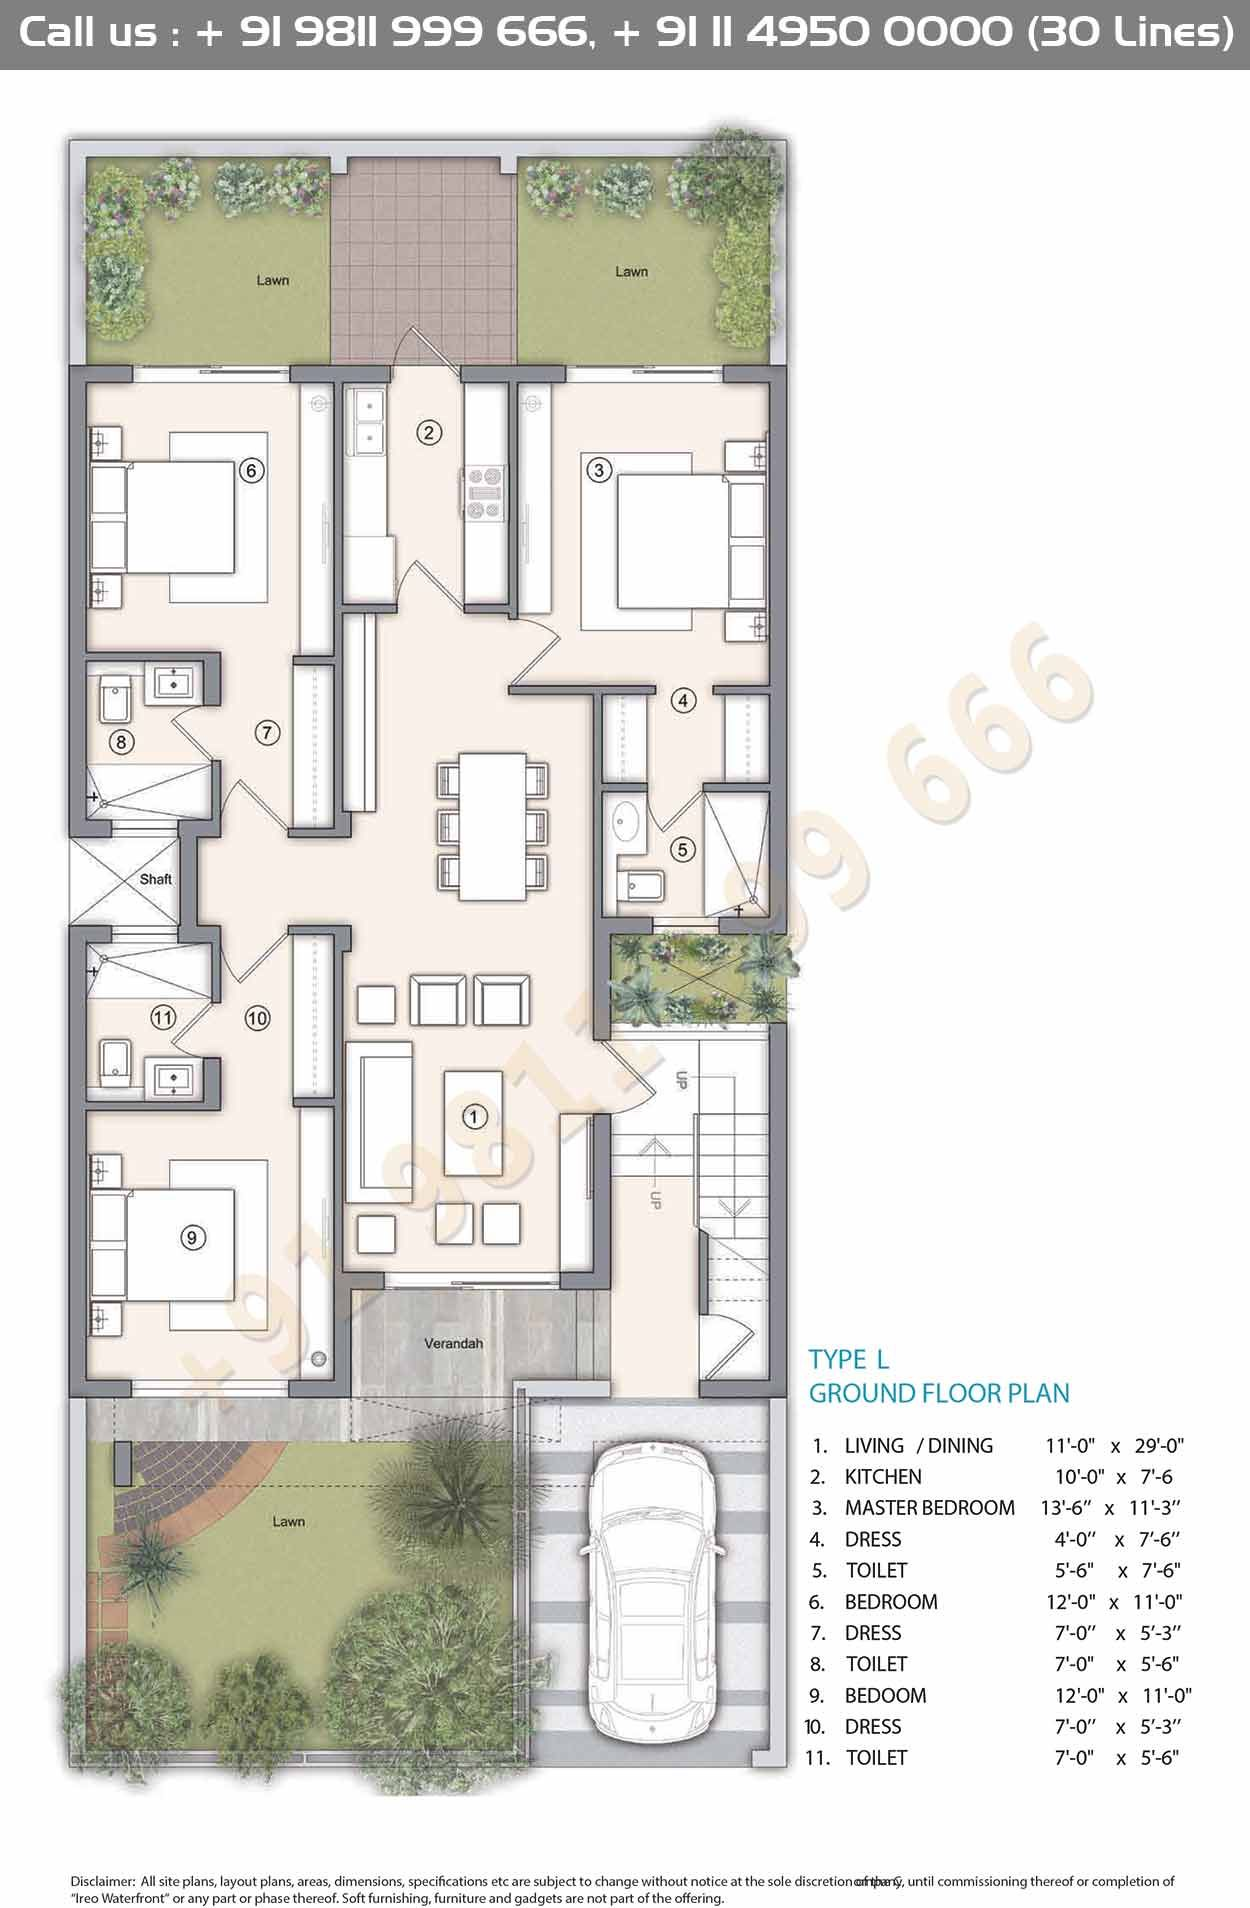 Ground Floor Plan House Construction Plan Courtyard House Plans Minimal House Design